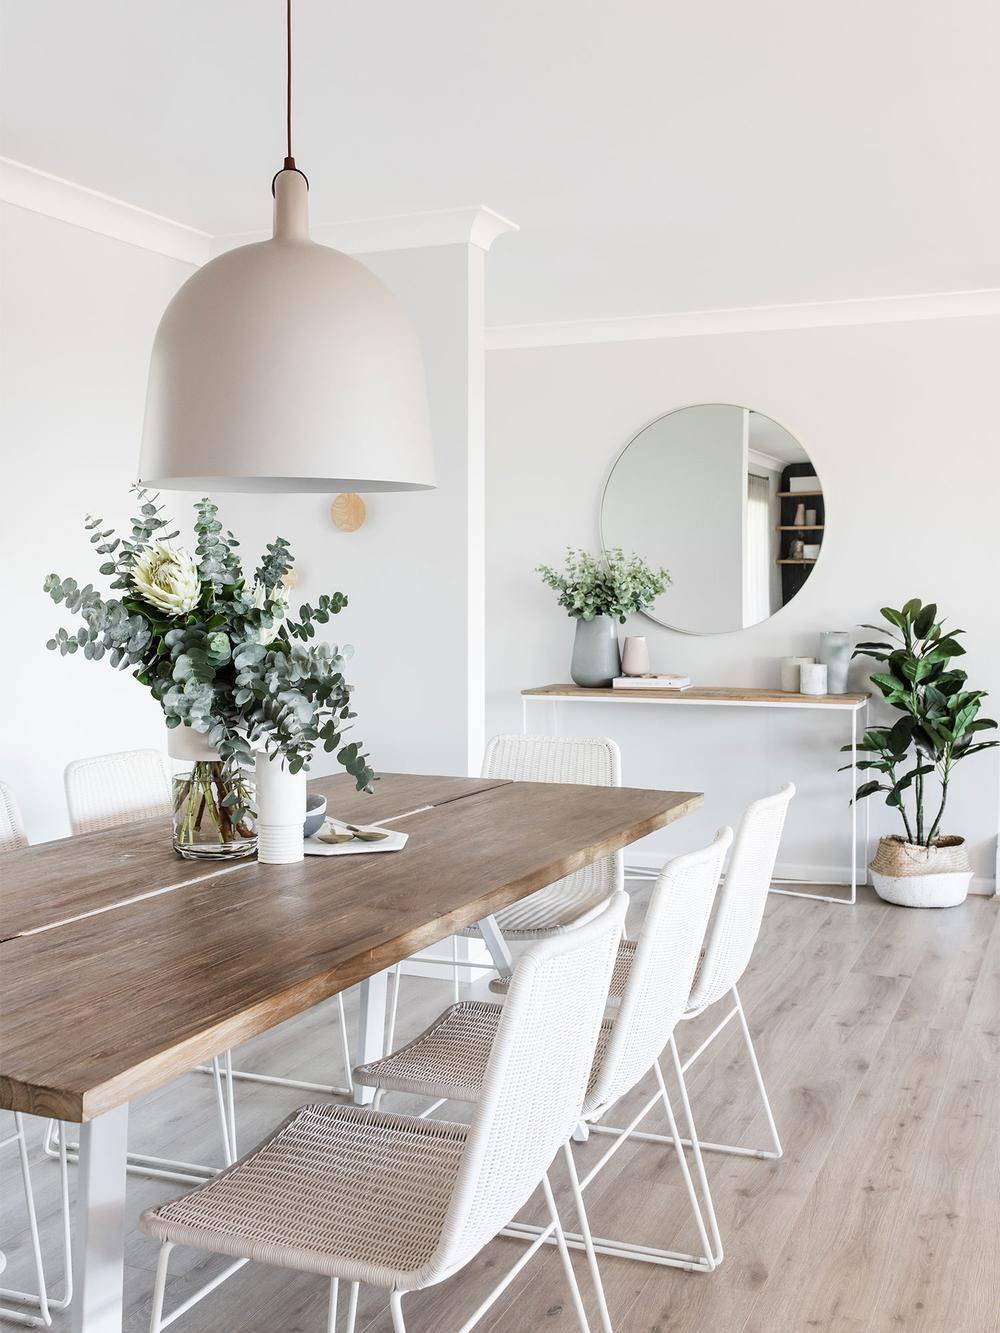 Tips For How To Make The Most Of Your Home Improvement Projects